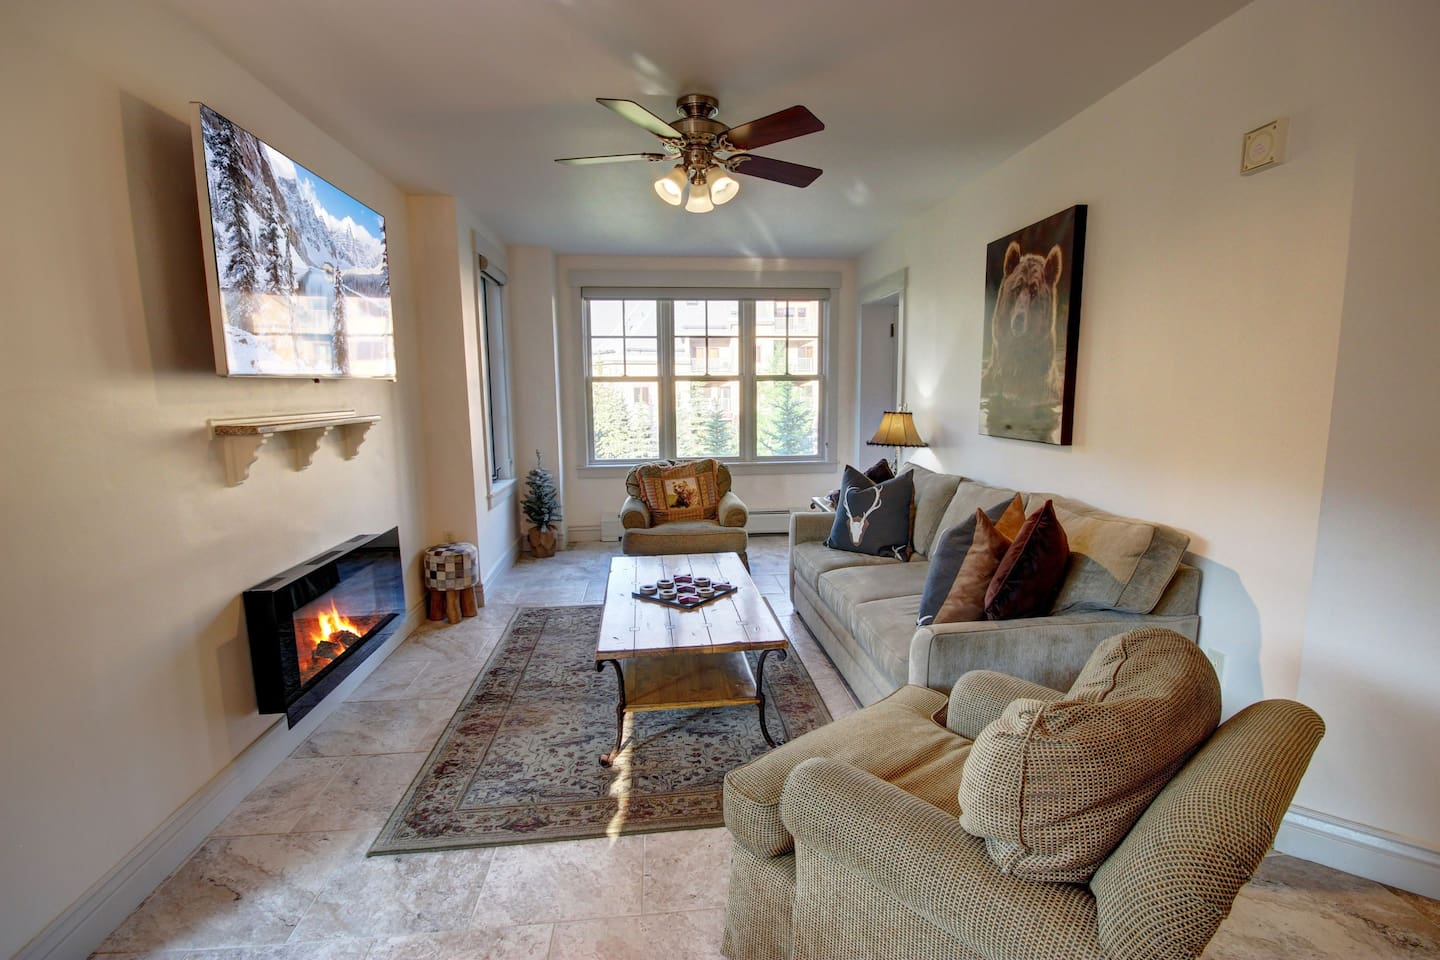 Big open living room perfect for relaxing with the family